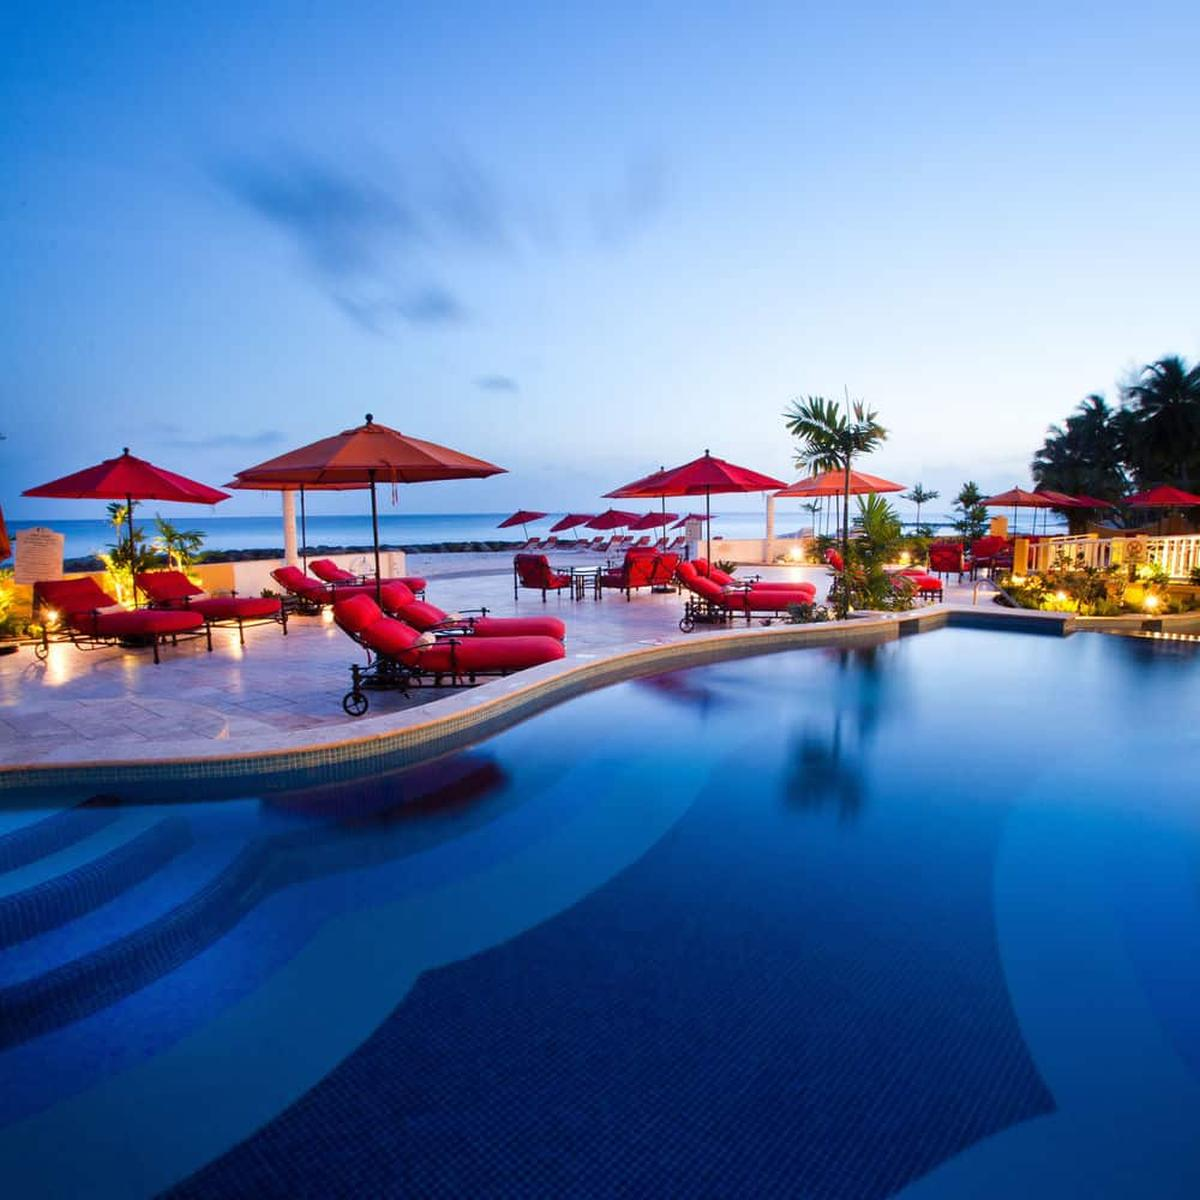 content/hotel/Barbados hotelek/Ocean Two Resort and Residence/Our/oceantworesortandresidence-our-01.jpg